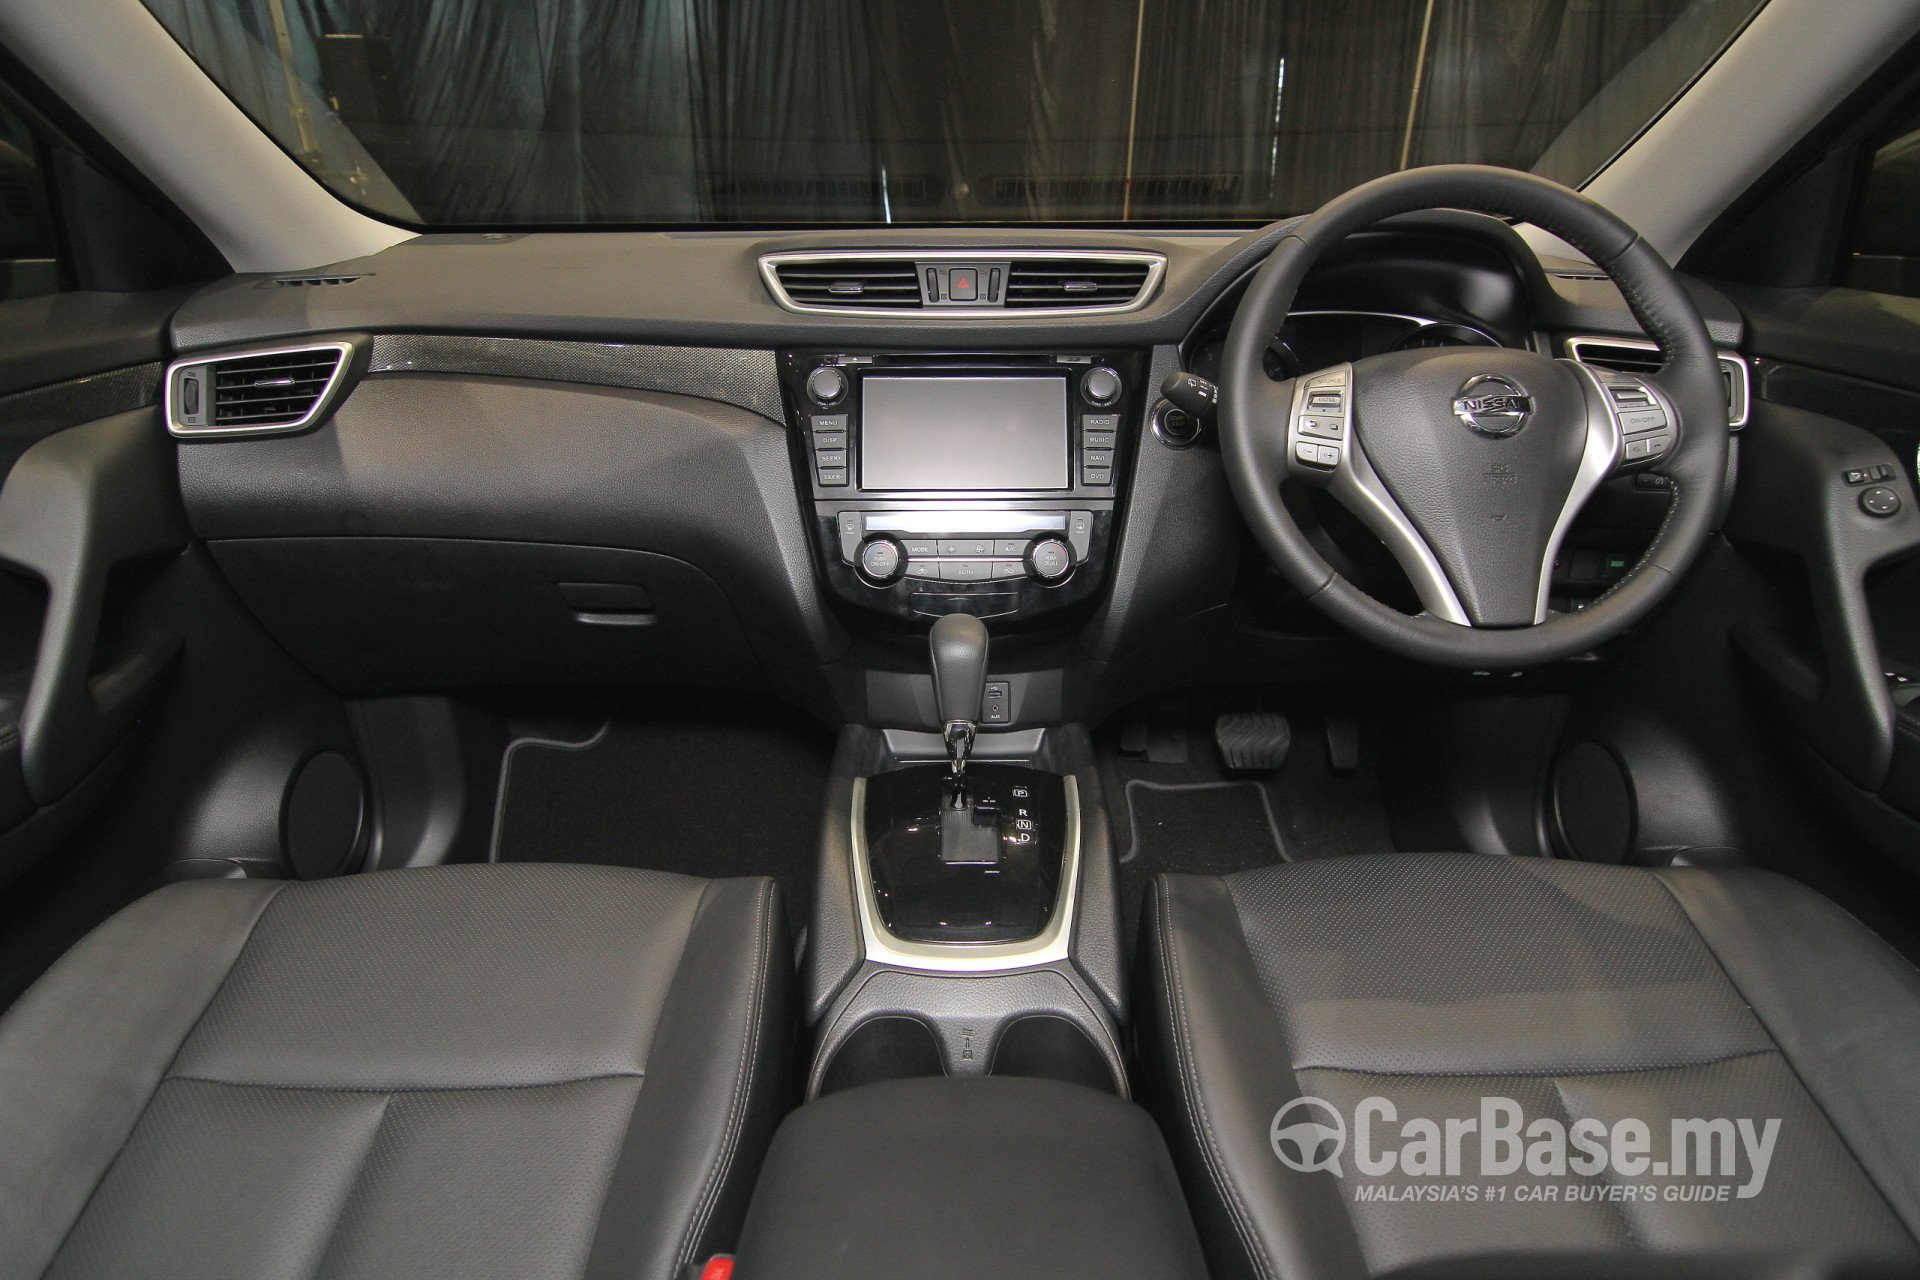 Nissan X-Trail 3rd Gen (2015) Interior Image #18988 in Malaysia - Reviews, Specs, Prices